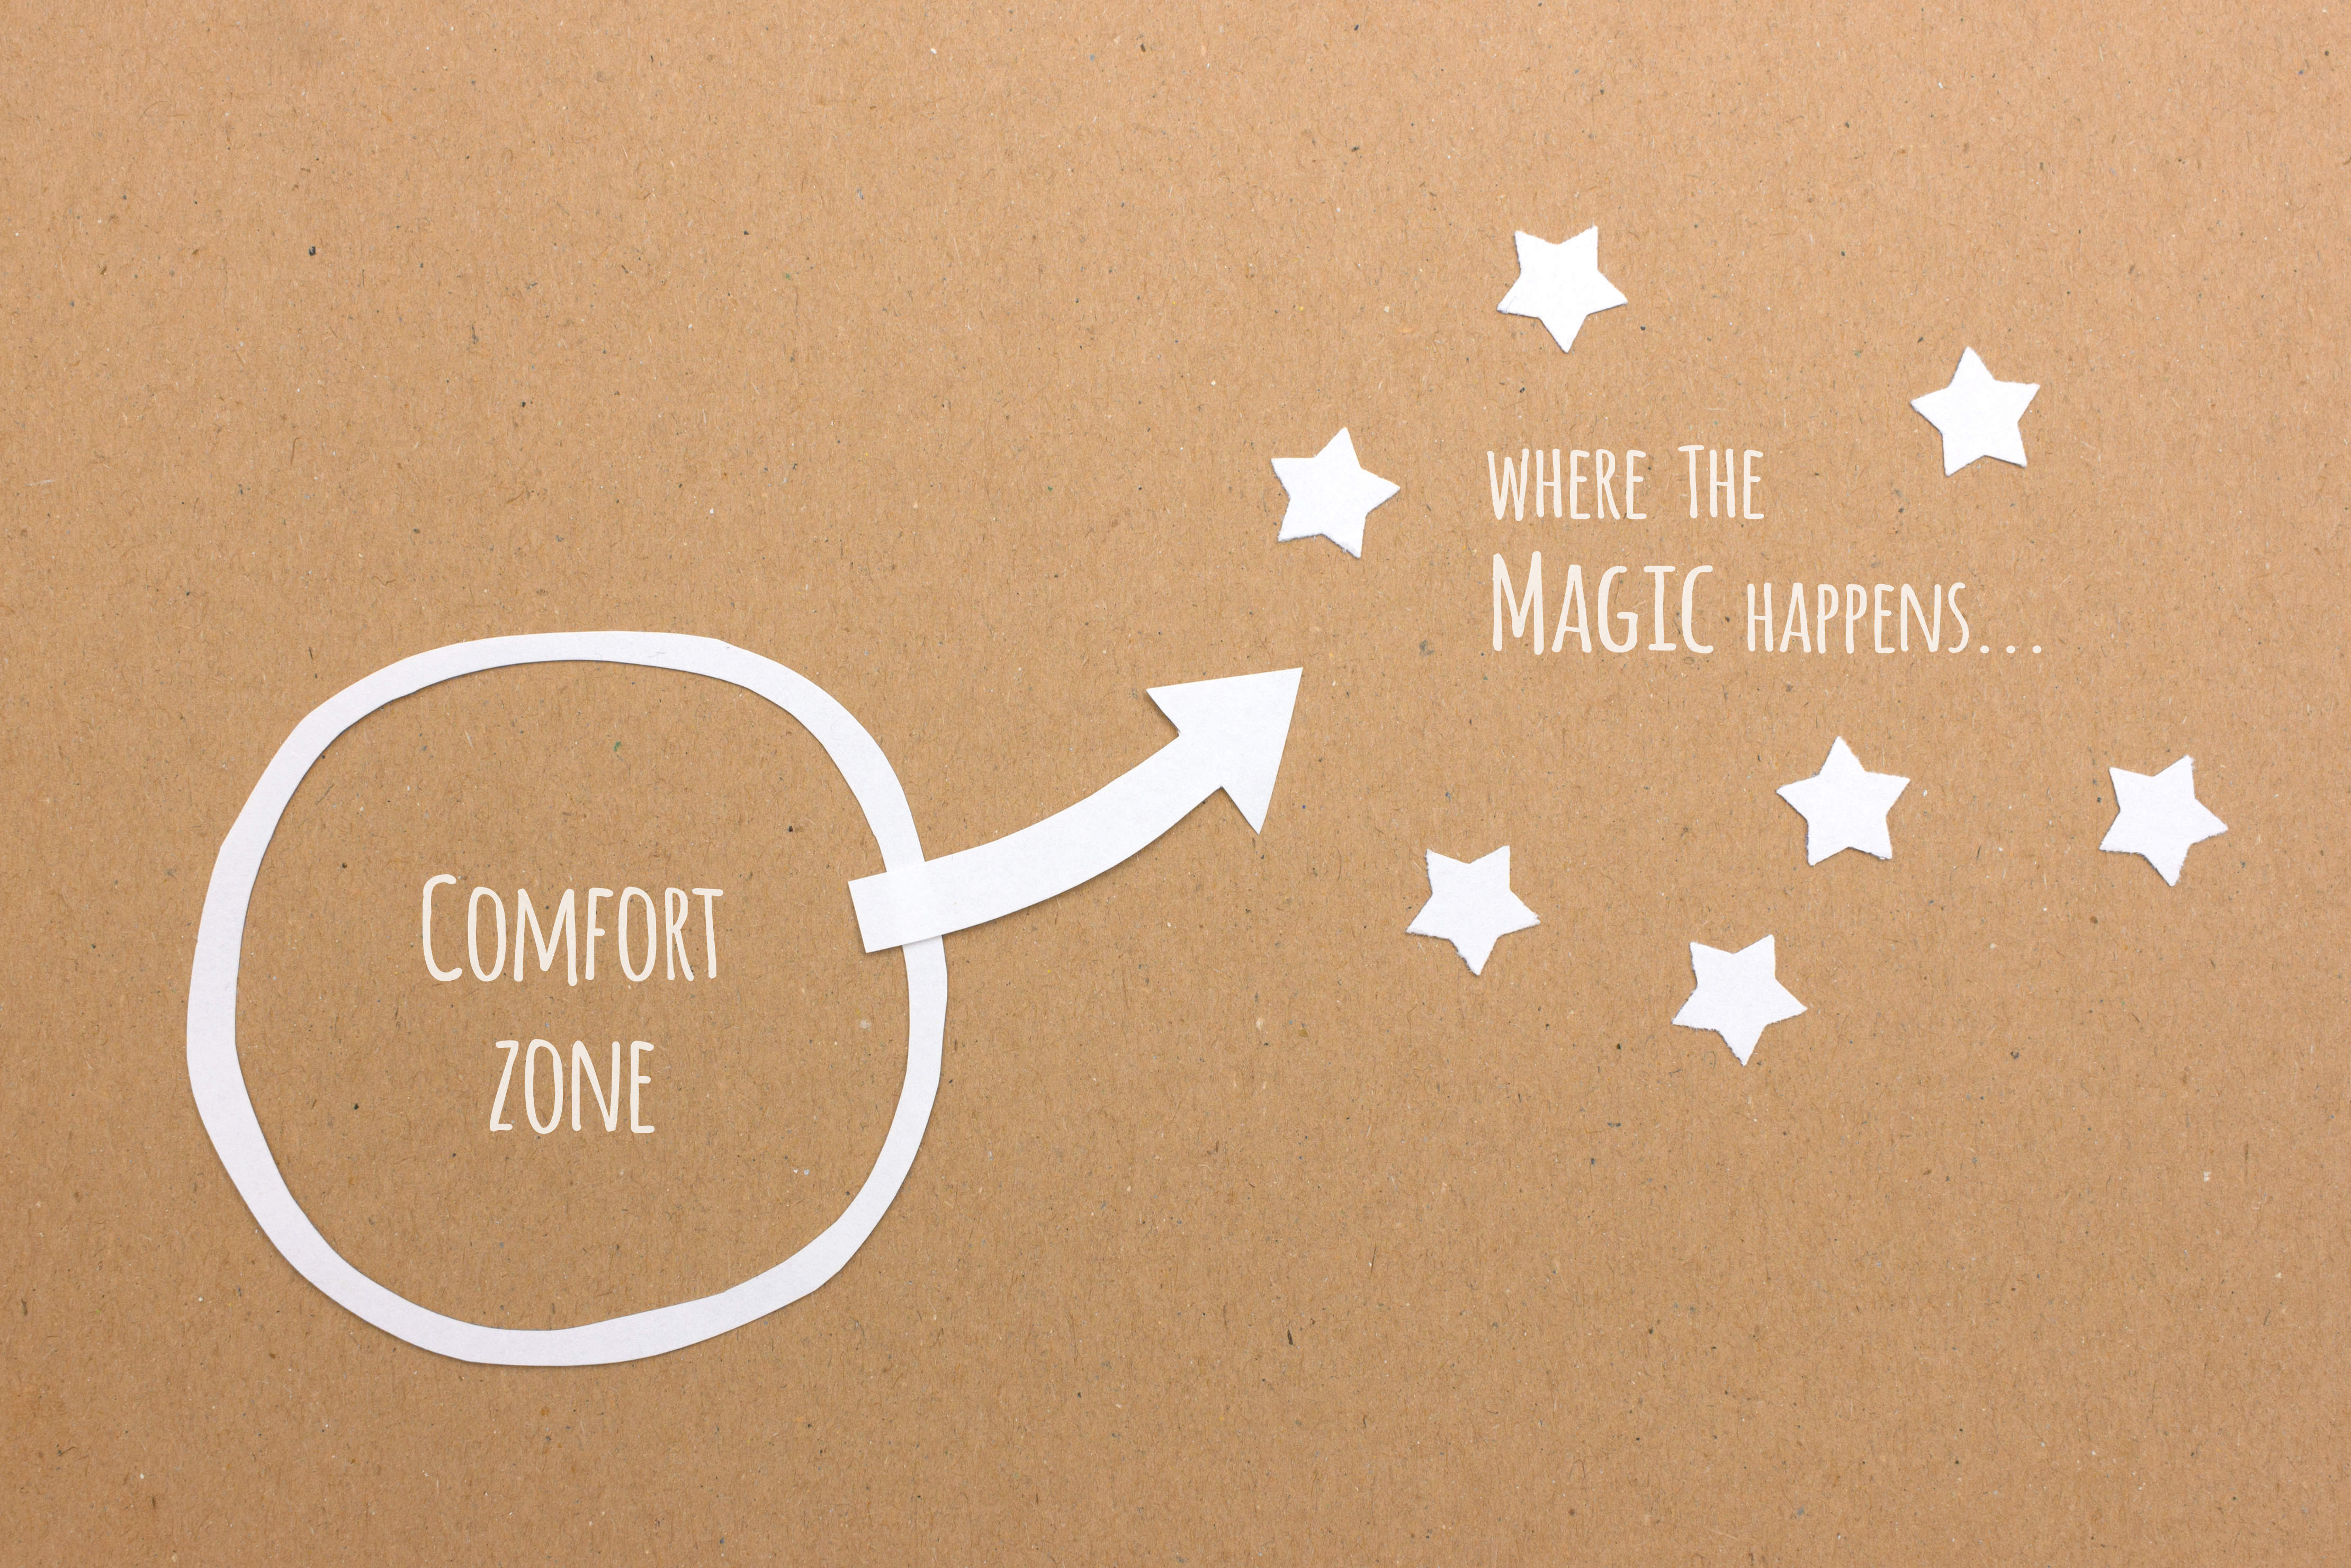 Raus aus der Komfortzone!  - Fuera de tu zona de comfort! - Out of your comfort zone!